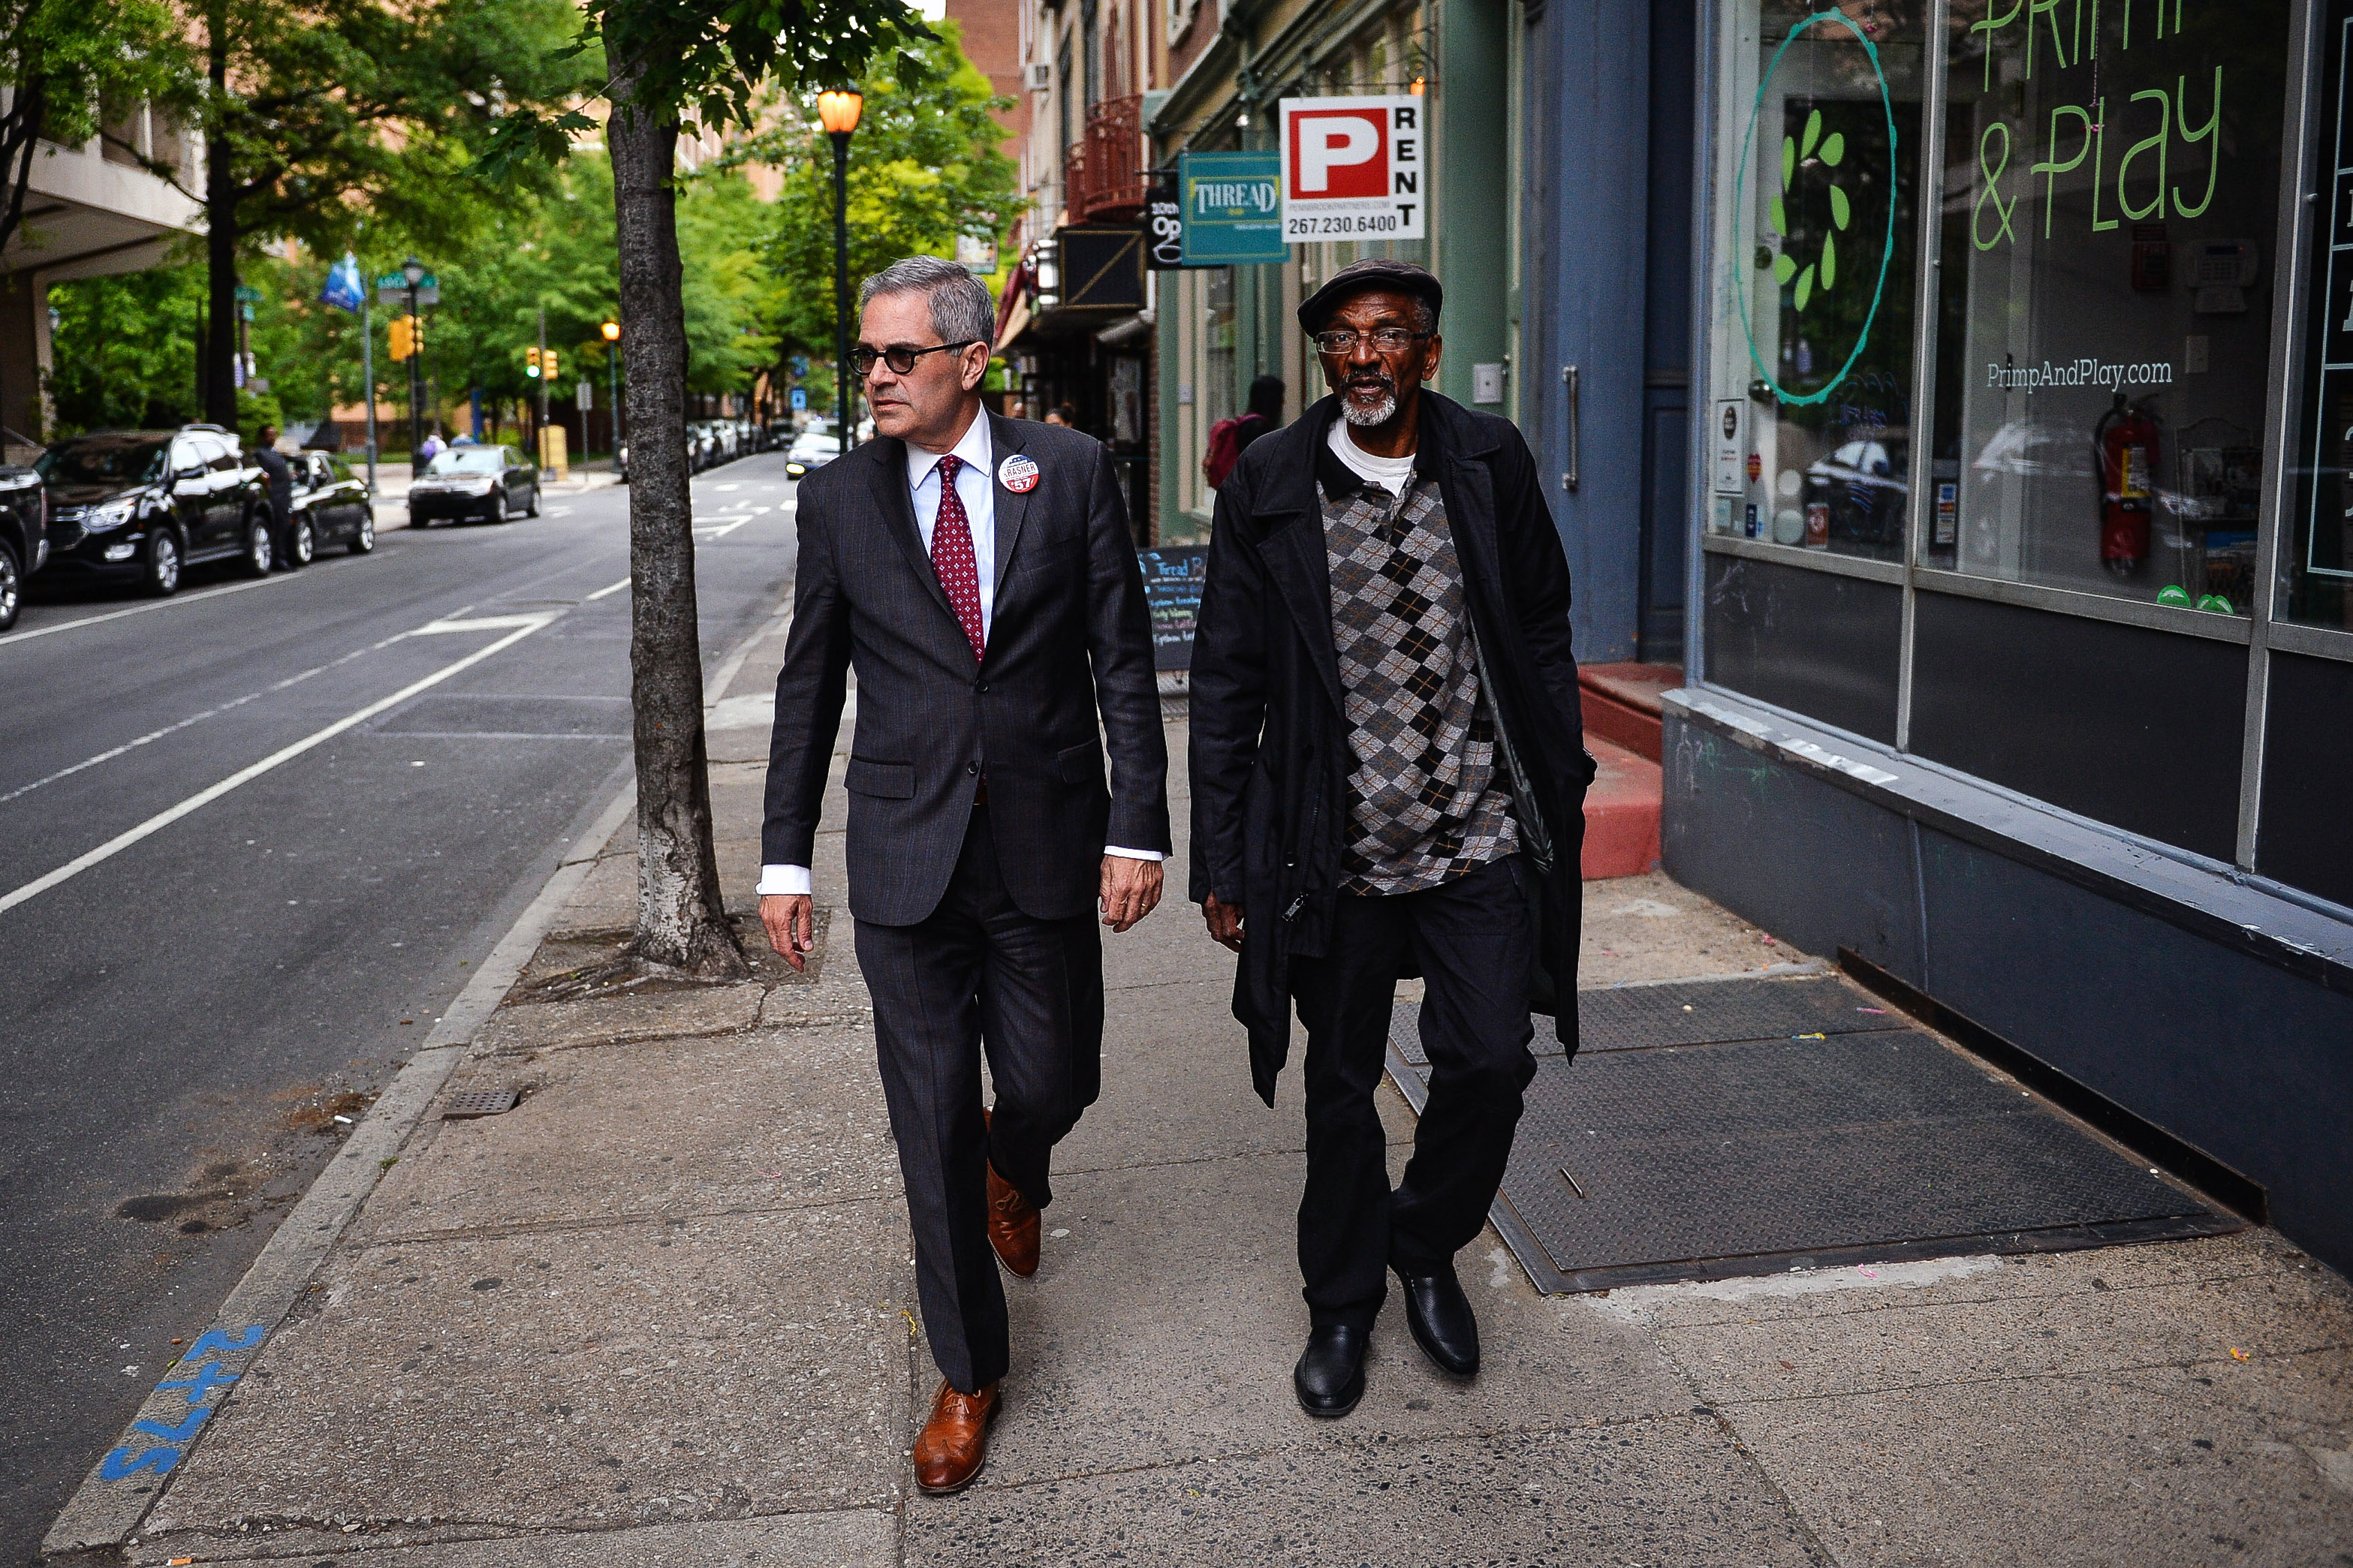 Philadelphia District Attorney candidate Lawrence Krasner and Wayne Jacobs, founder of X-Offenders Community Empowerment, walk together to a campaign event in Philadelphia, PA, Thursday, May 11, 2017.Charles Mostoller for the Intercept